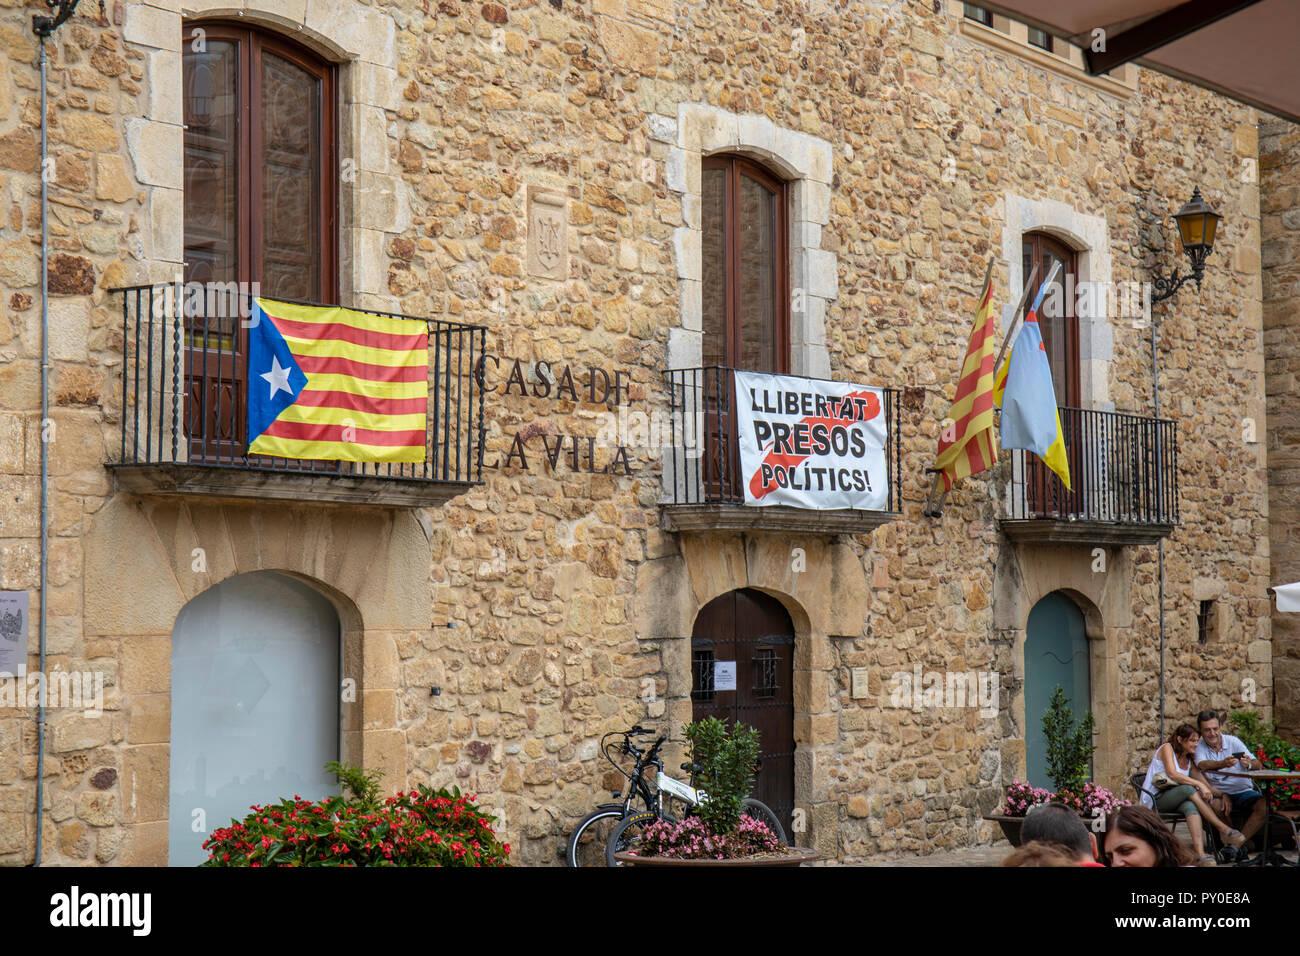 Freedom for Political Prisoners and the flag of an independent Cartalan country, Pals, Catalunya, Spain Stock Photo